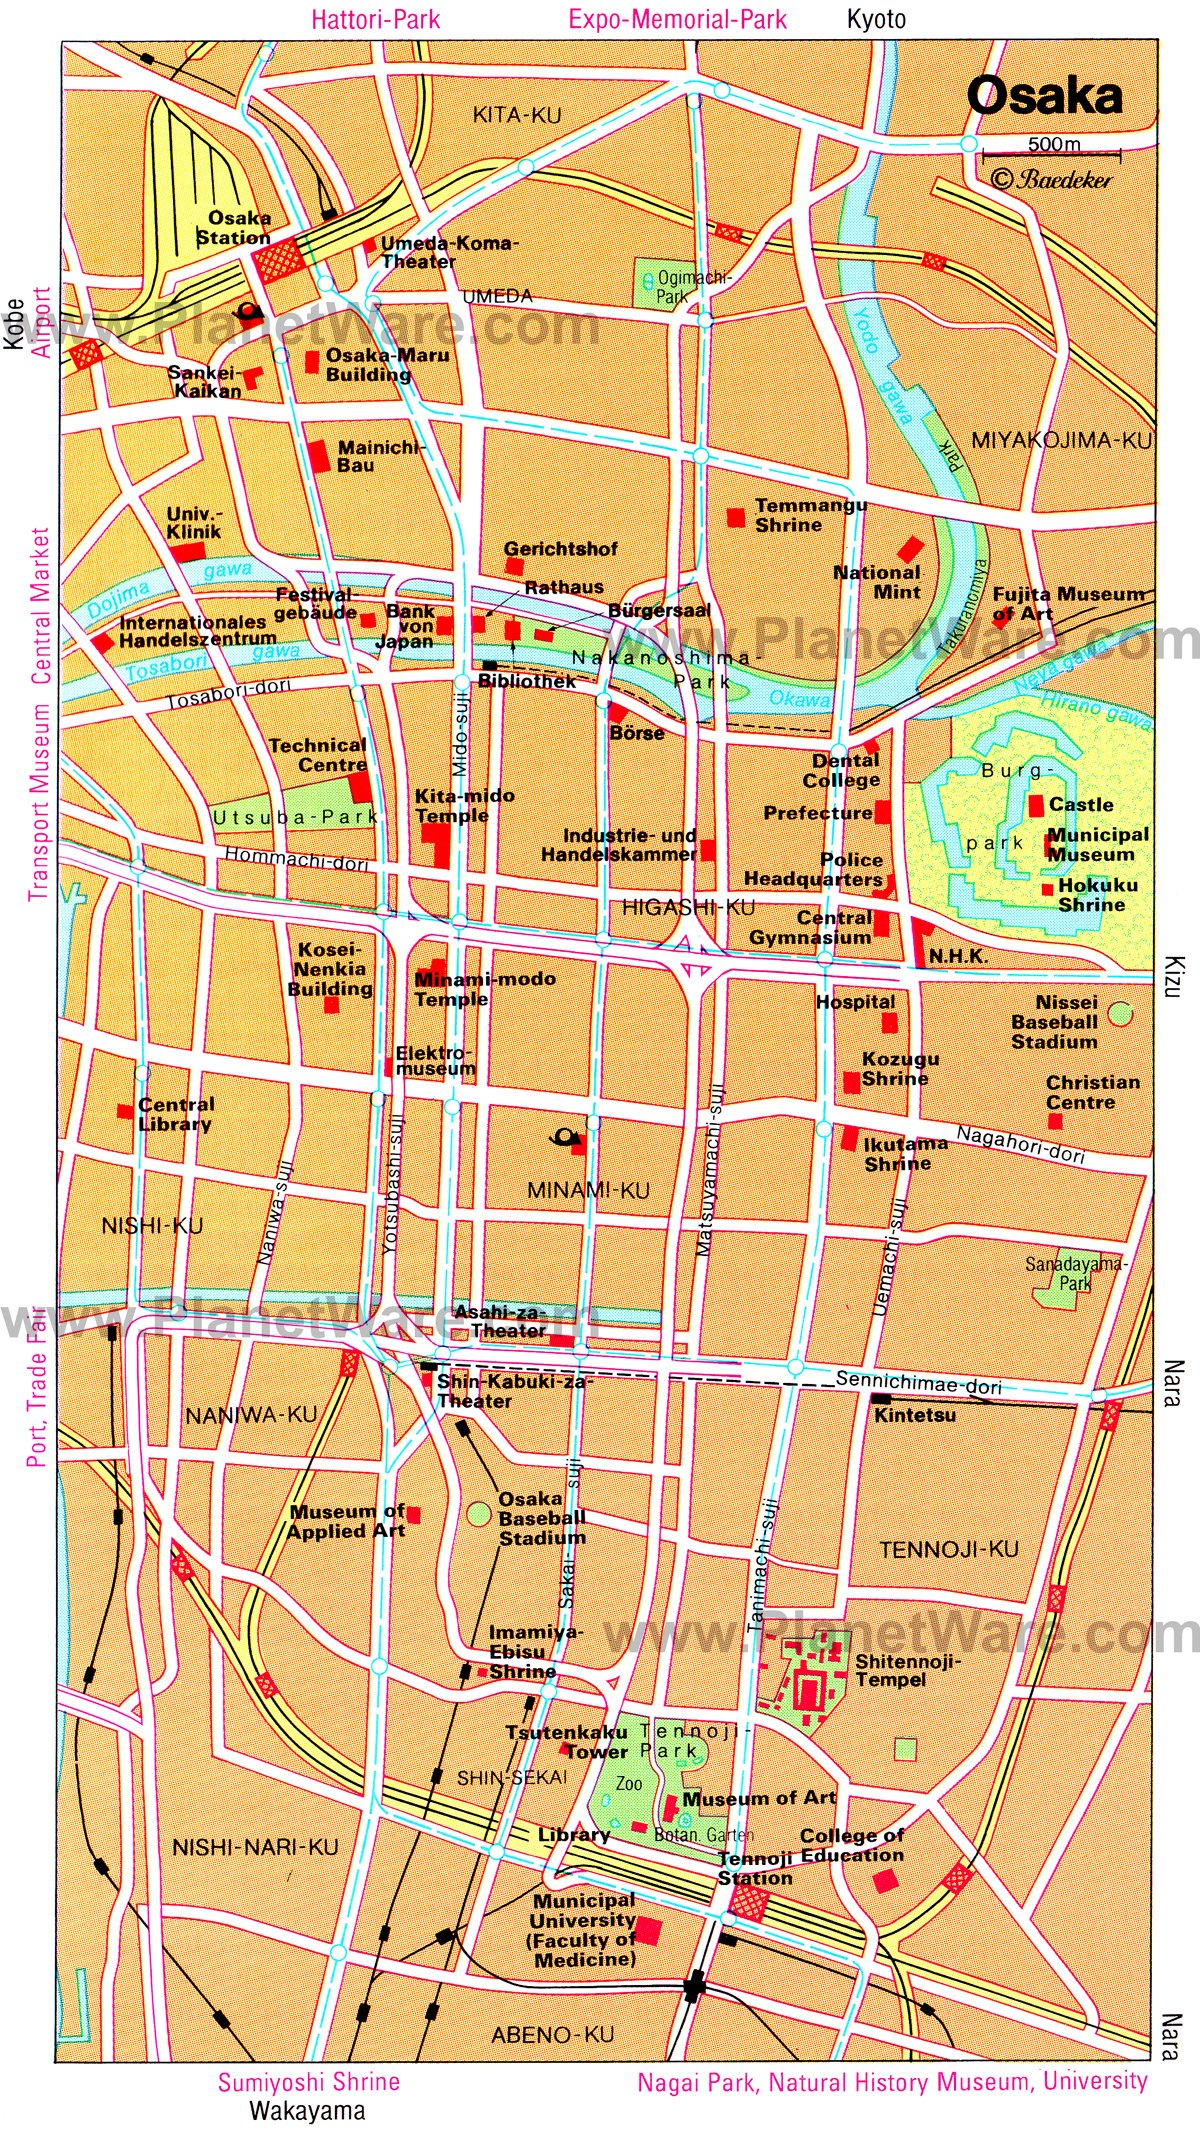 10 TopRated Tourist Attractions in Osaka – Kansas City Tourist Attractions Map